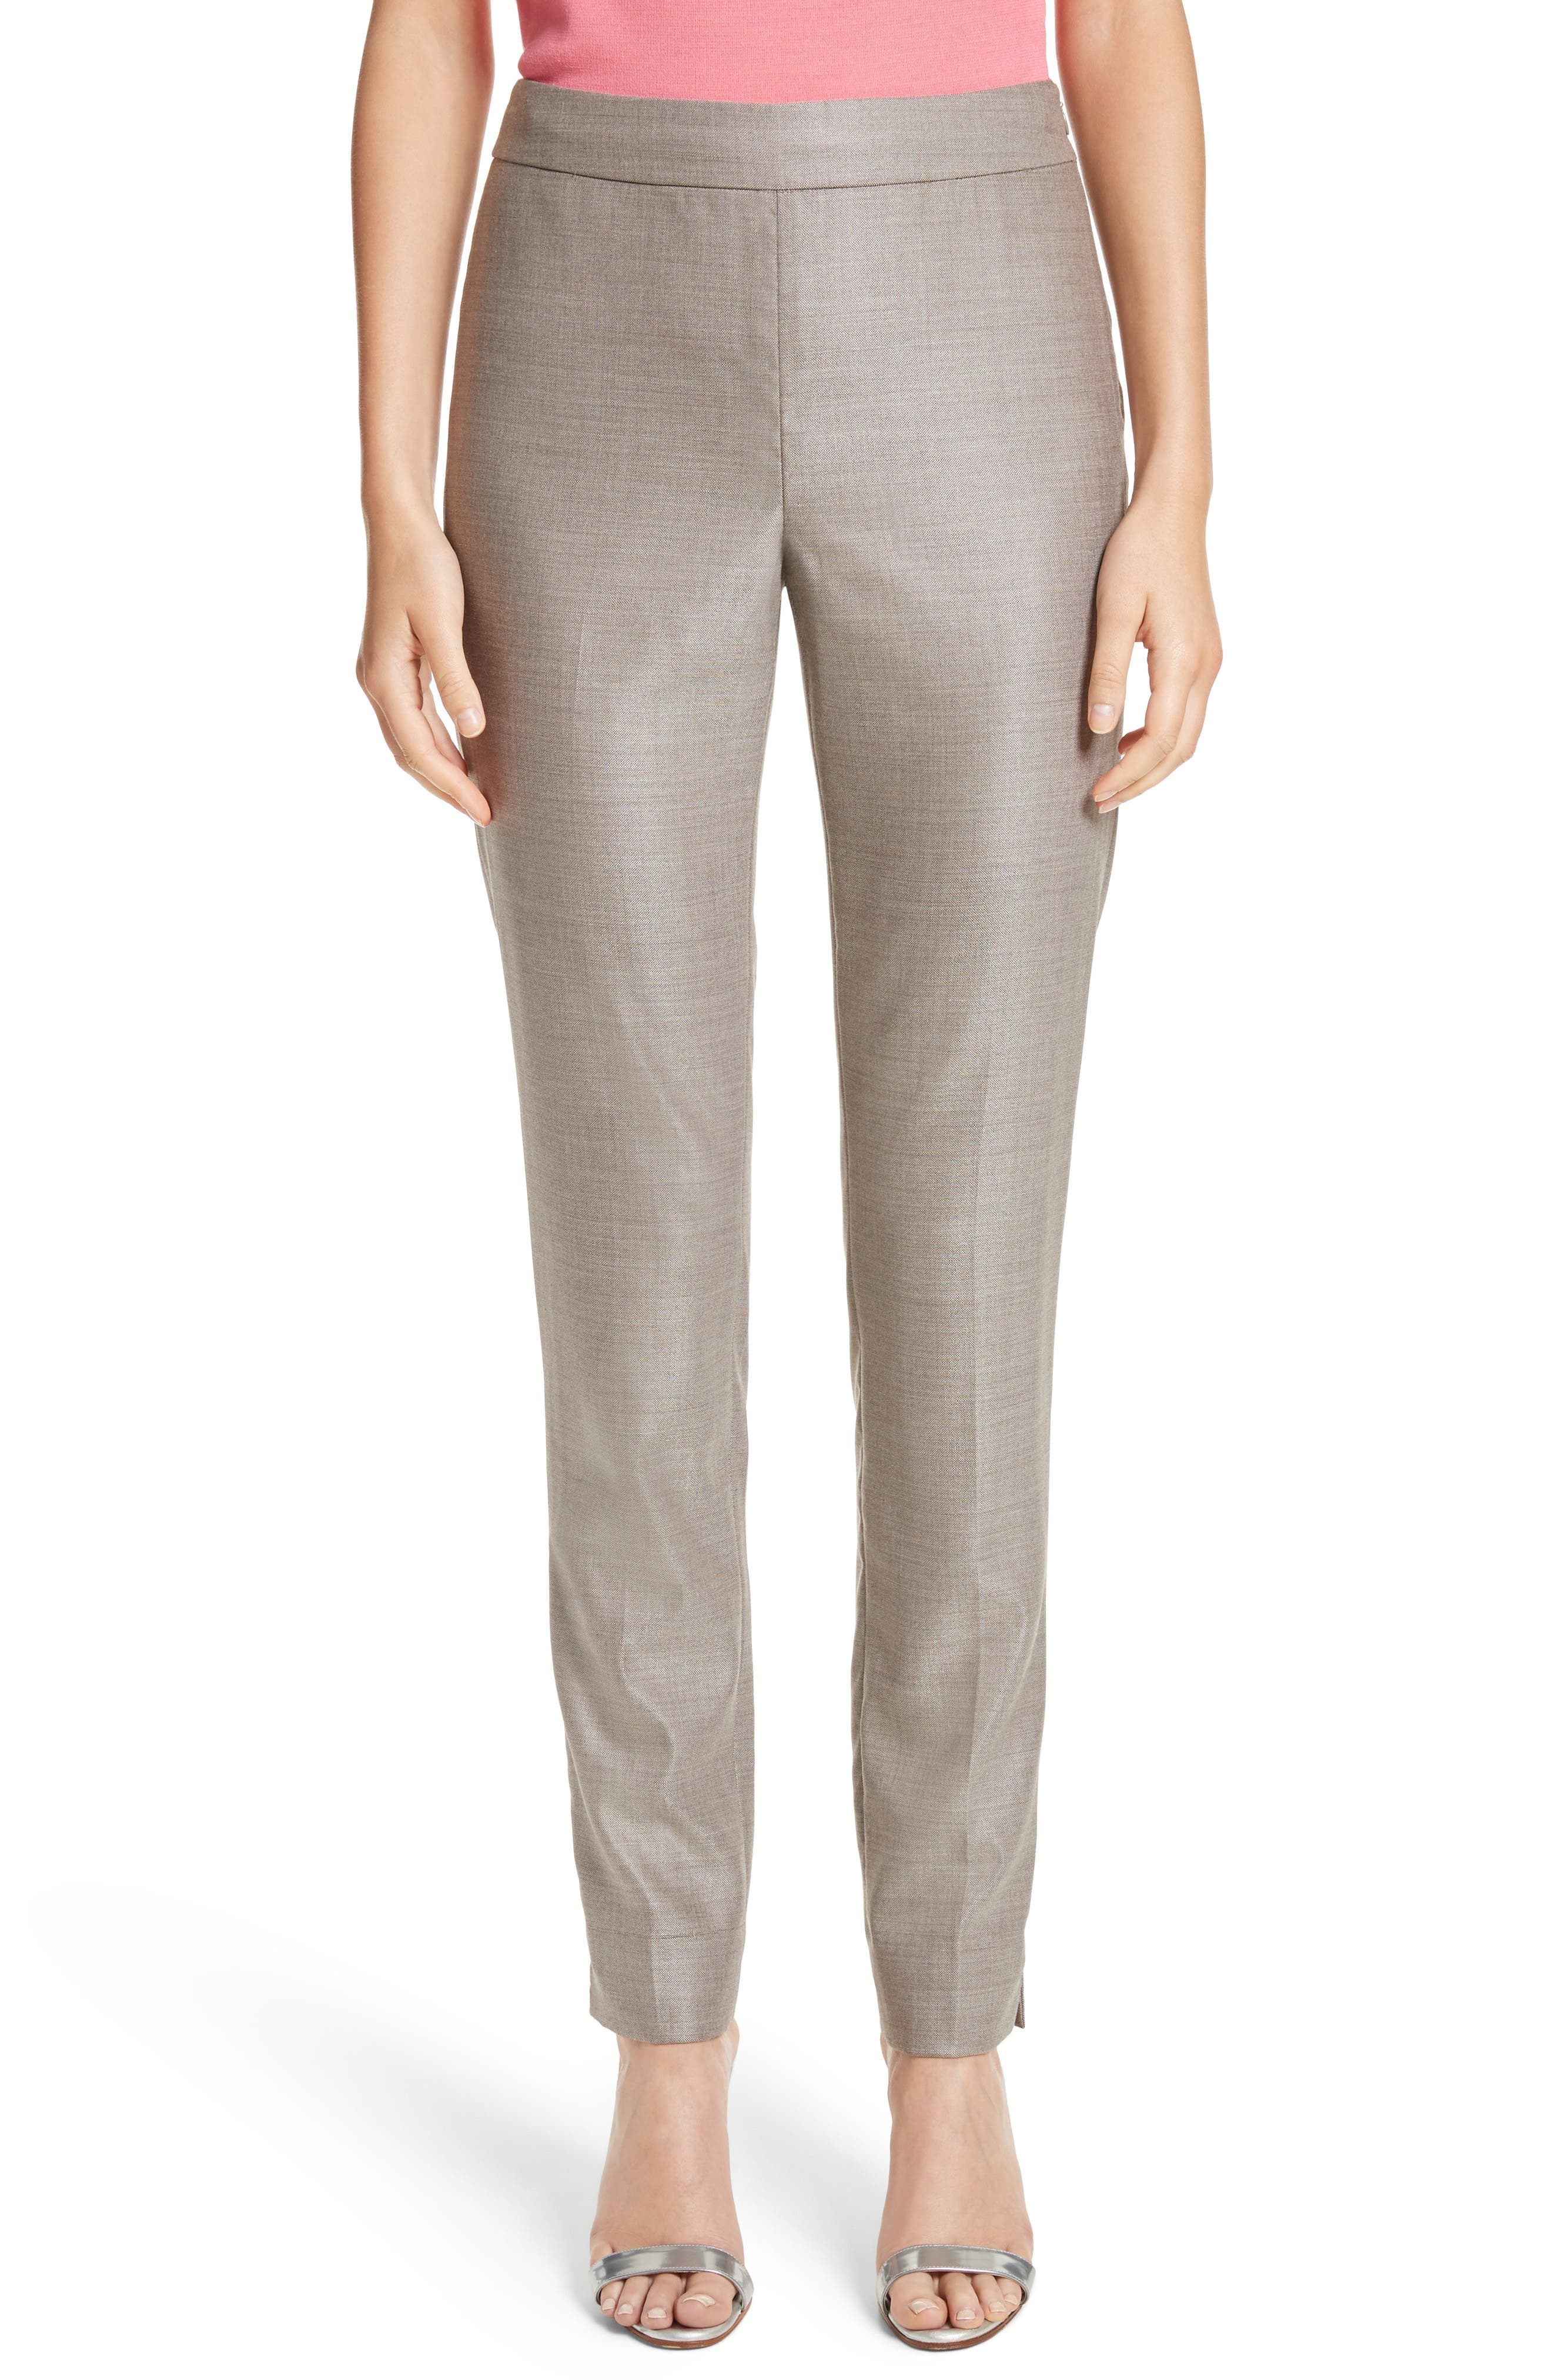 Stretch Birdseye Skinny Ankle Pants,                             Main thumbnail 1, color,                             270